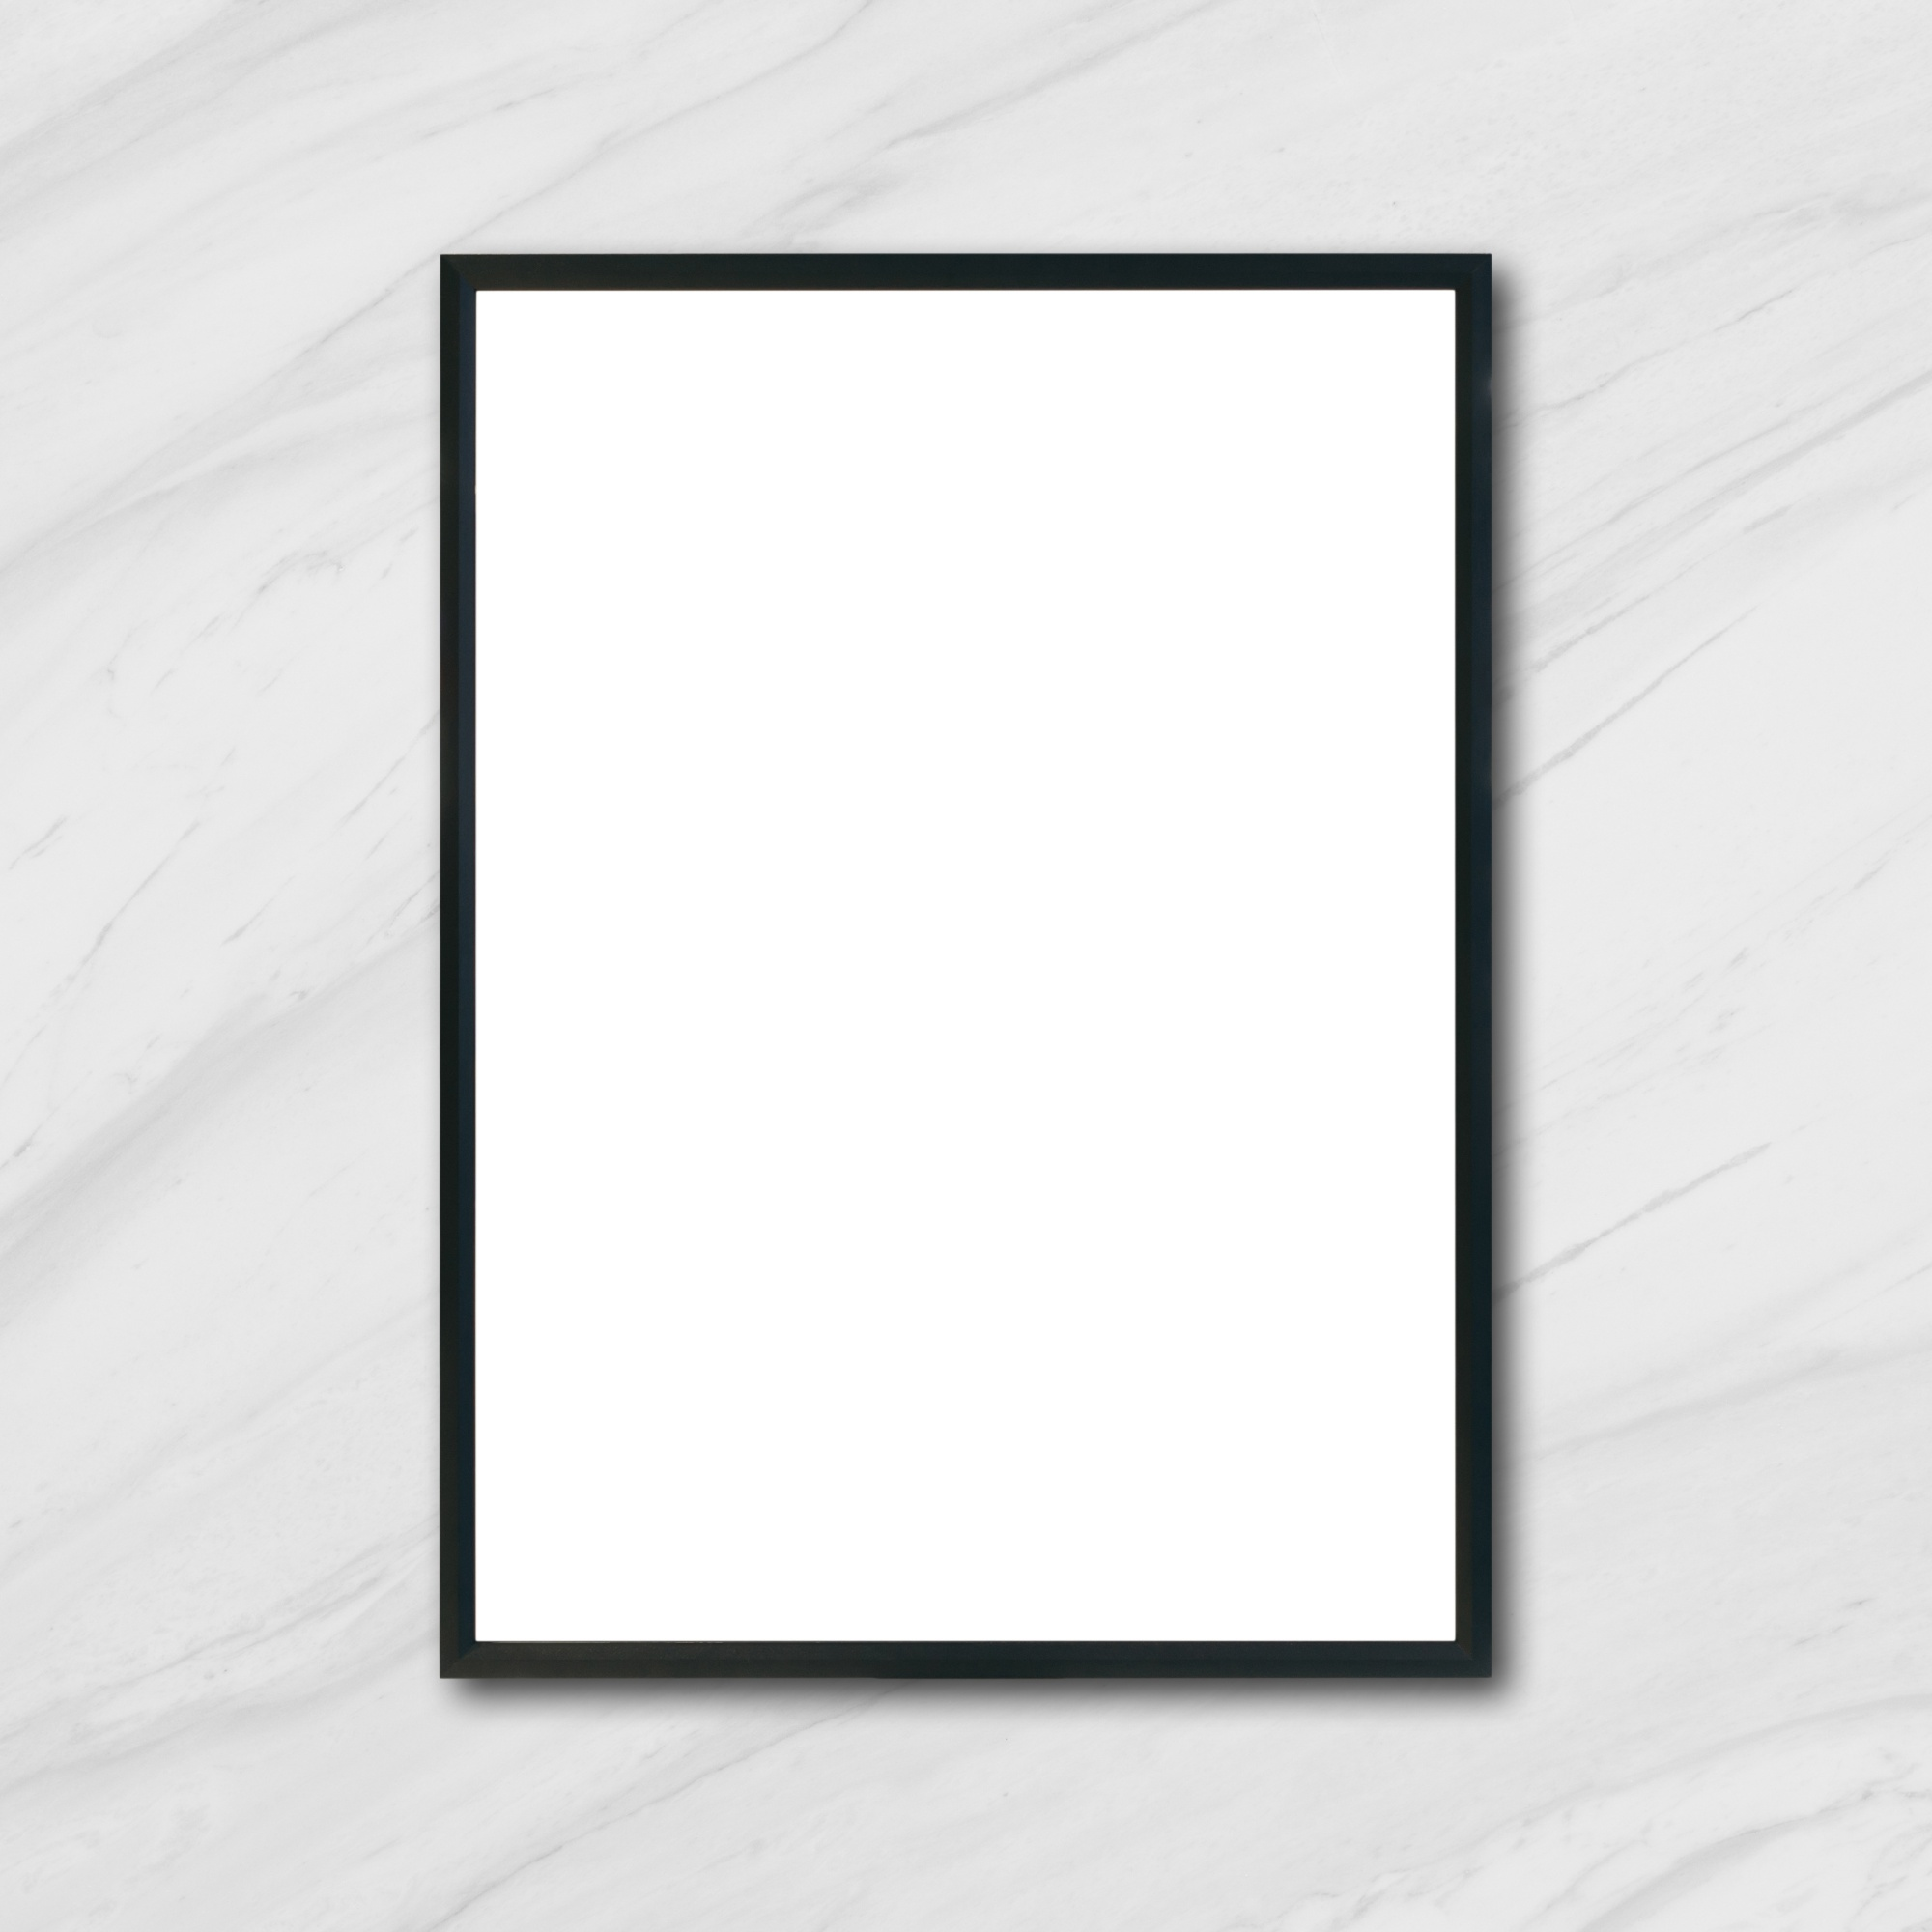 Mock up blank poster picture frame hanging on white marble wall in room - can be used mockup for montage products display and design key visual layout.